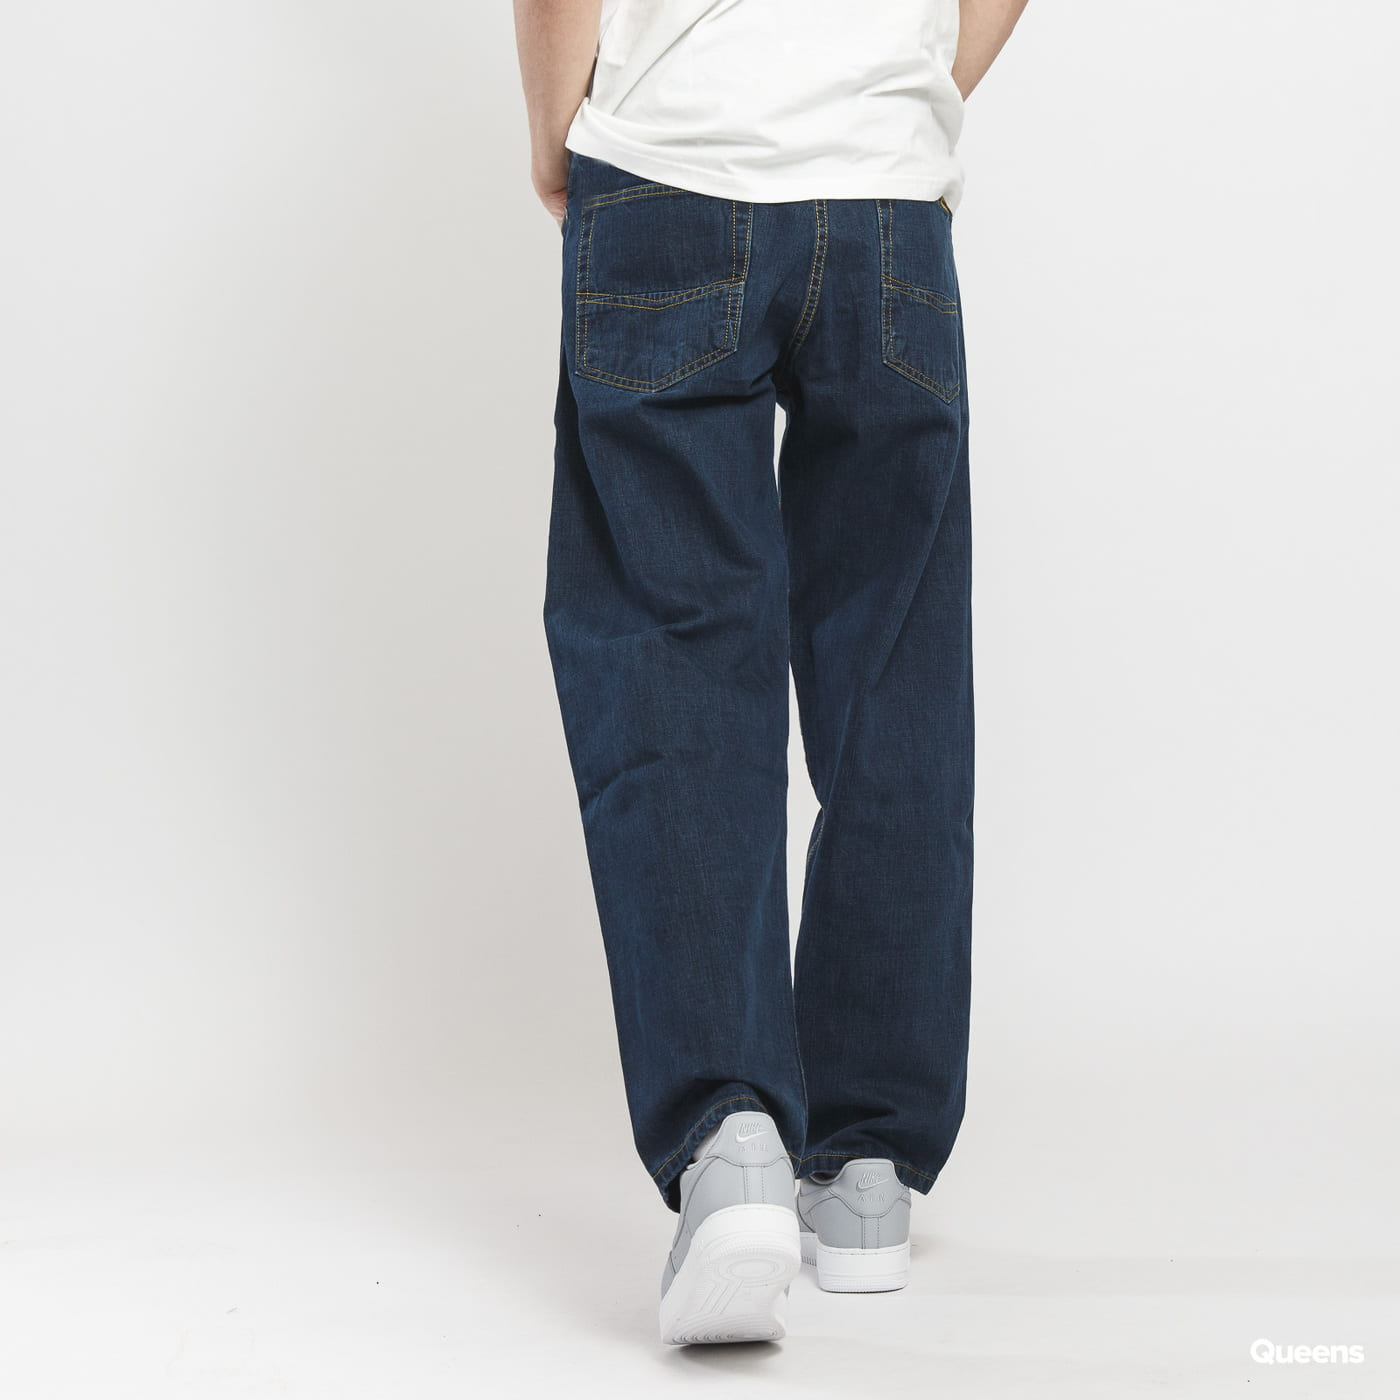 Mass DNM Slang Baggy Fit rinse